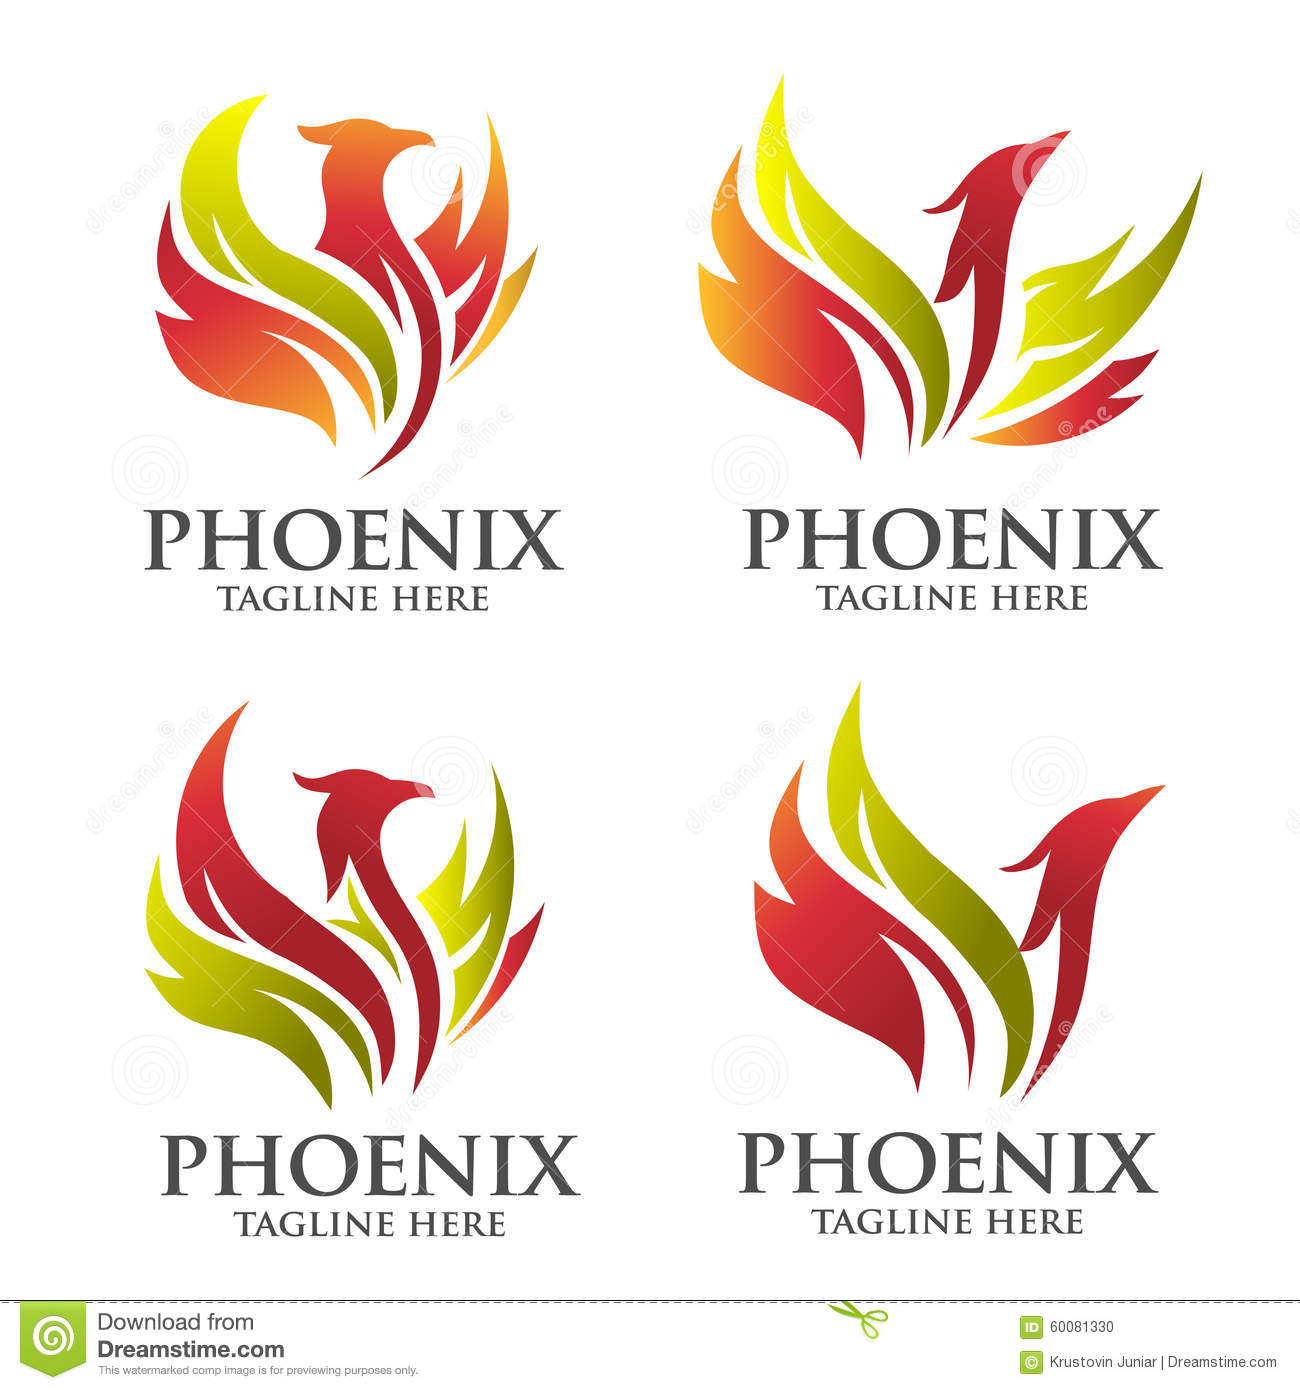 Phoenix rising dating sim